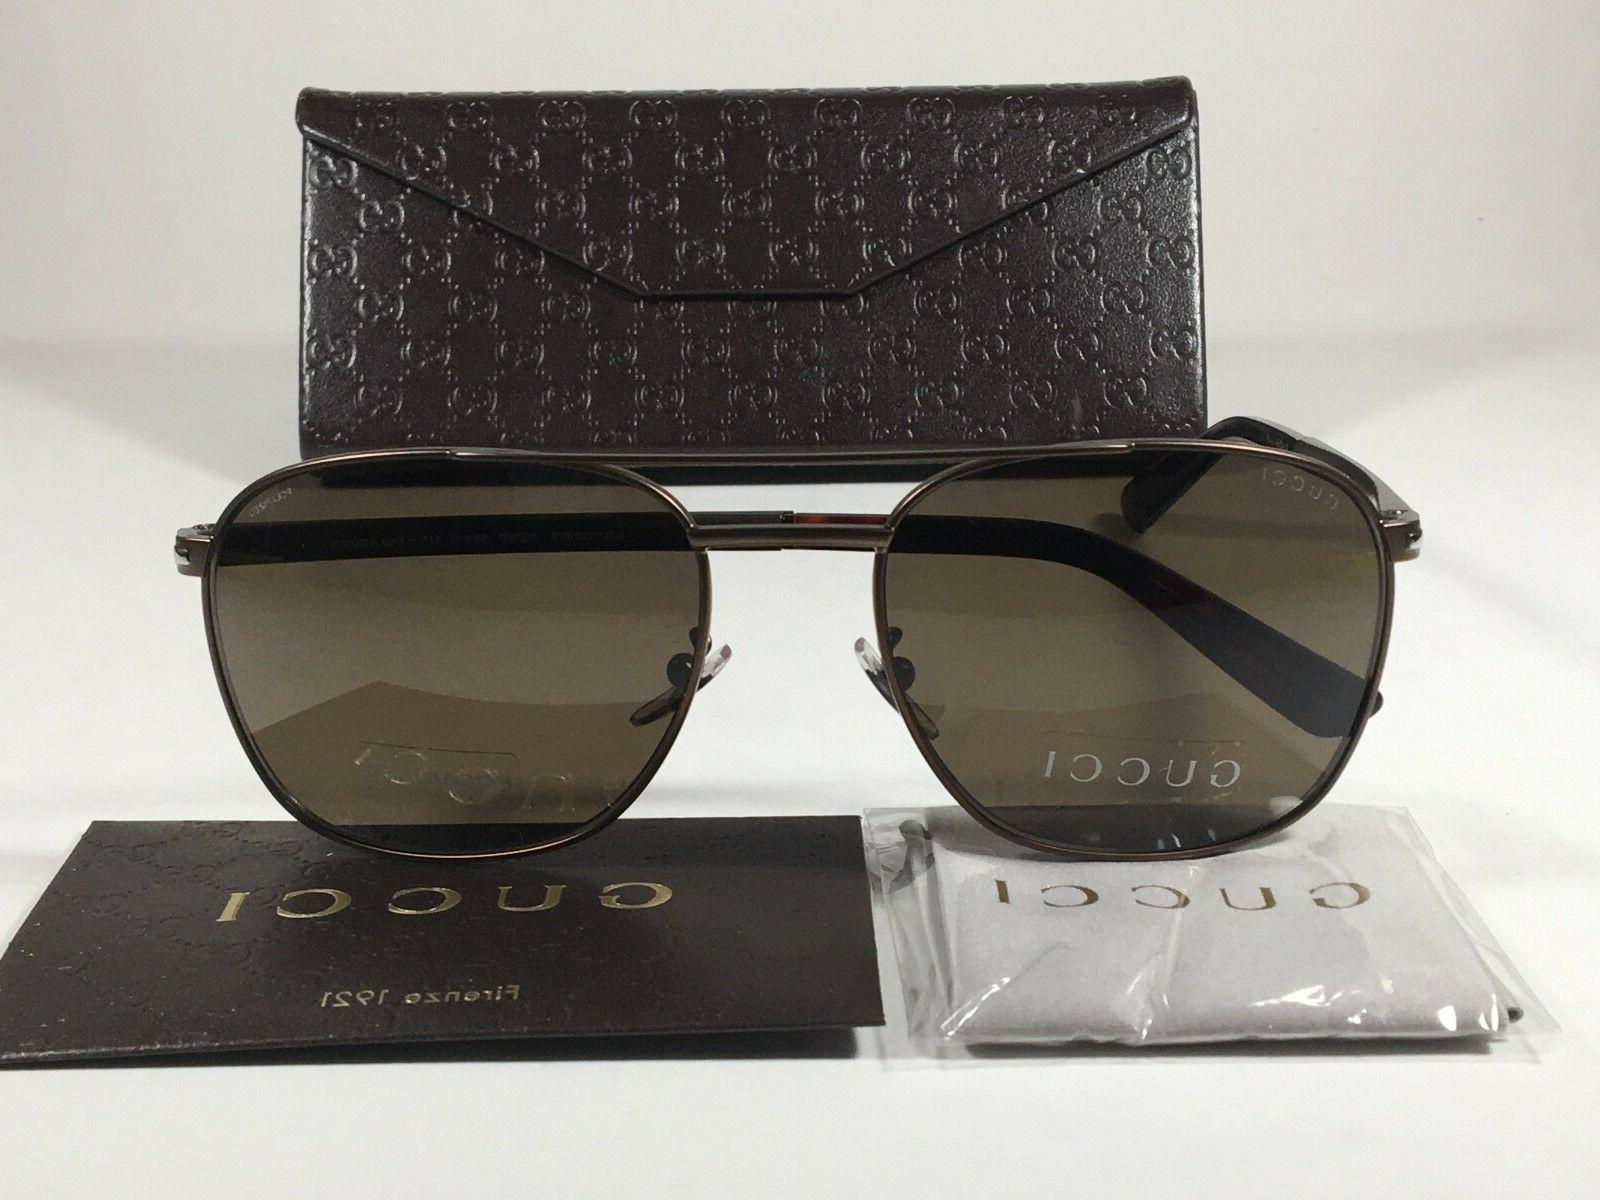 New Authentic Gucci Polarized Aviator Pilot Sunglasses Matte